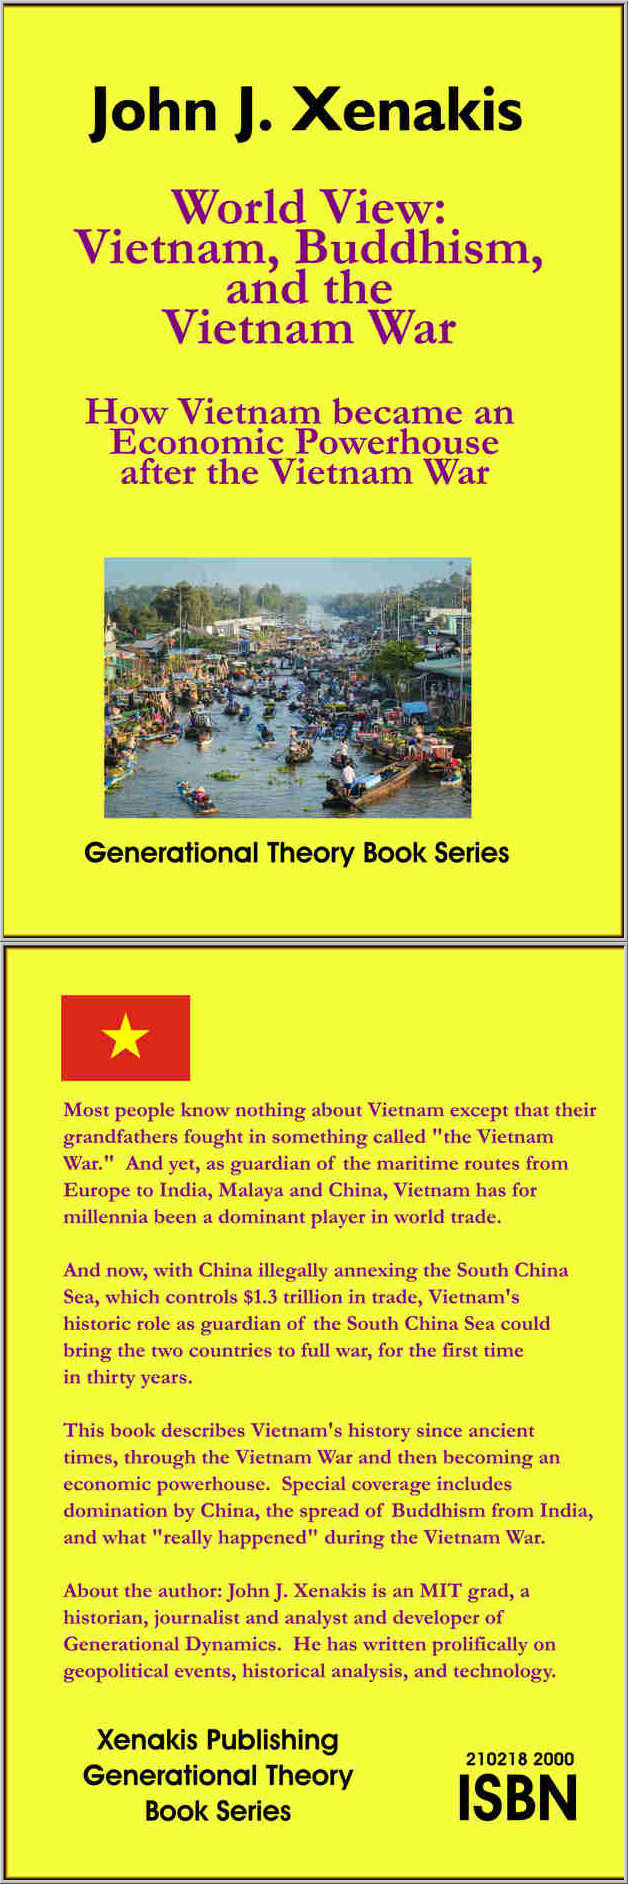 Front and back covers of forthcoming book on history of Vietnam